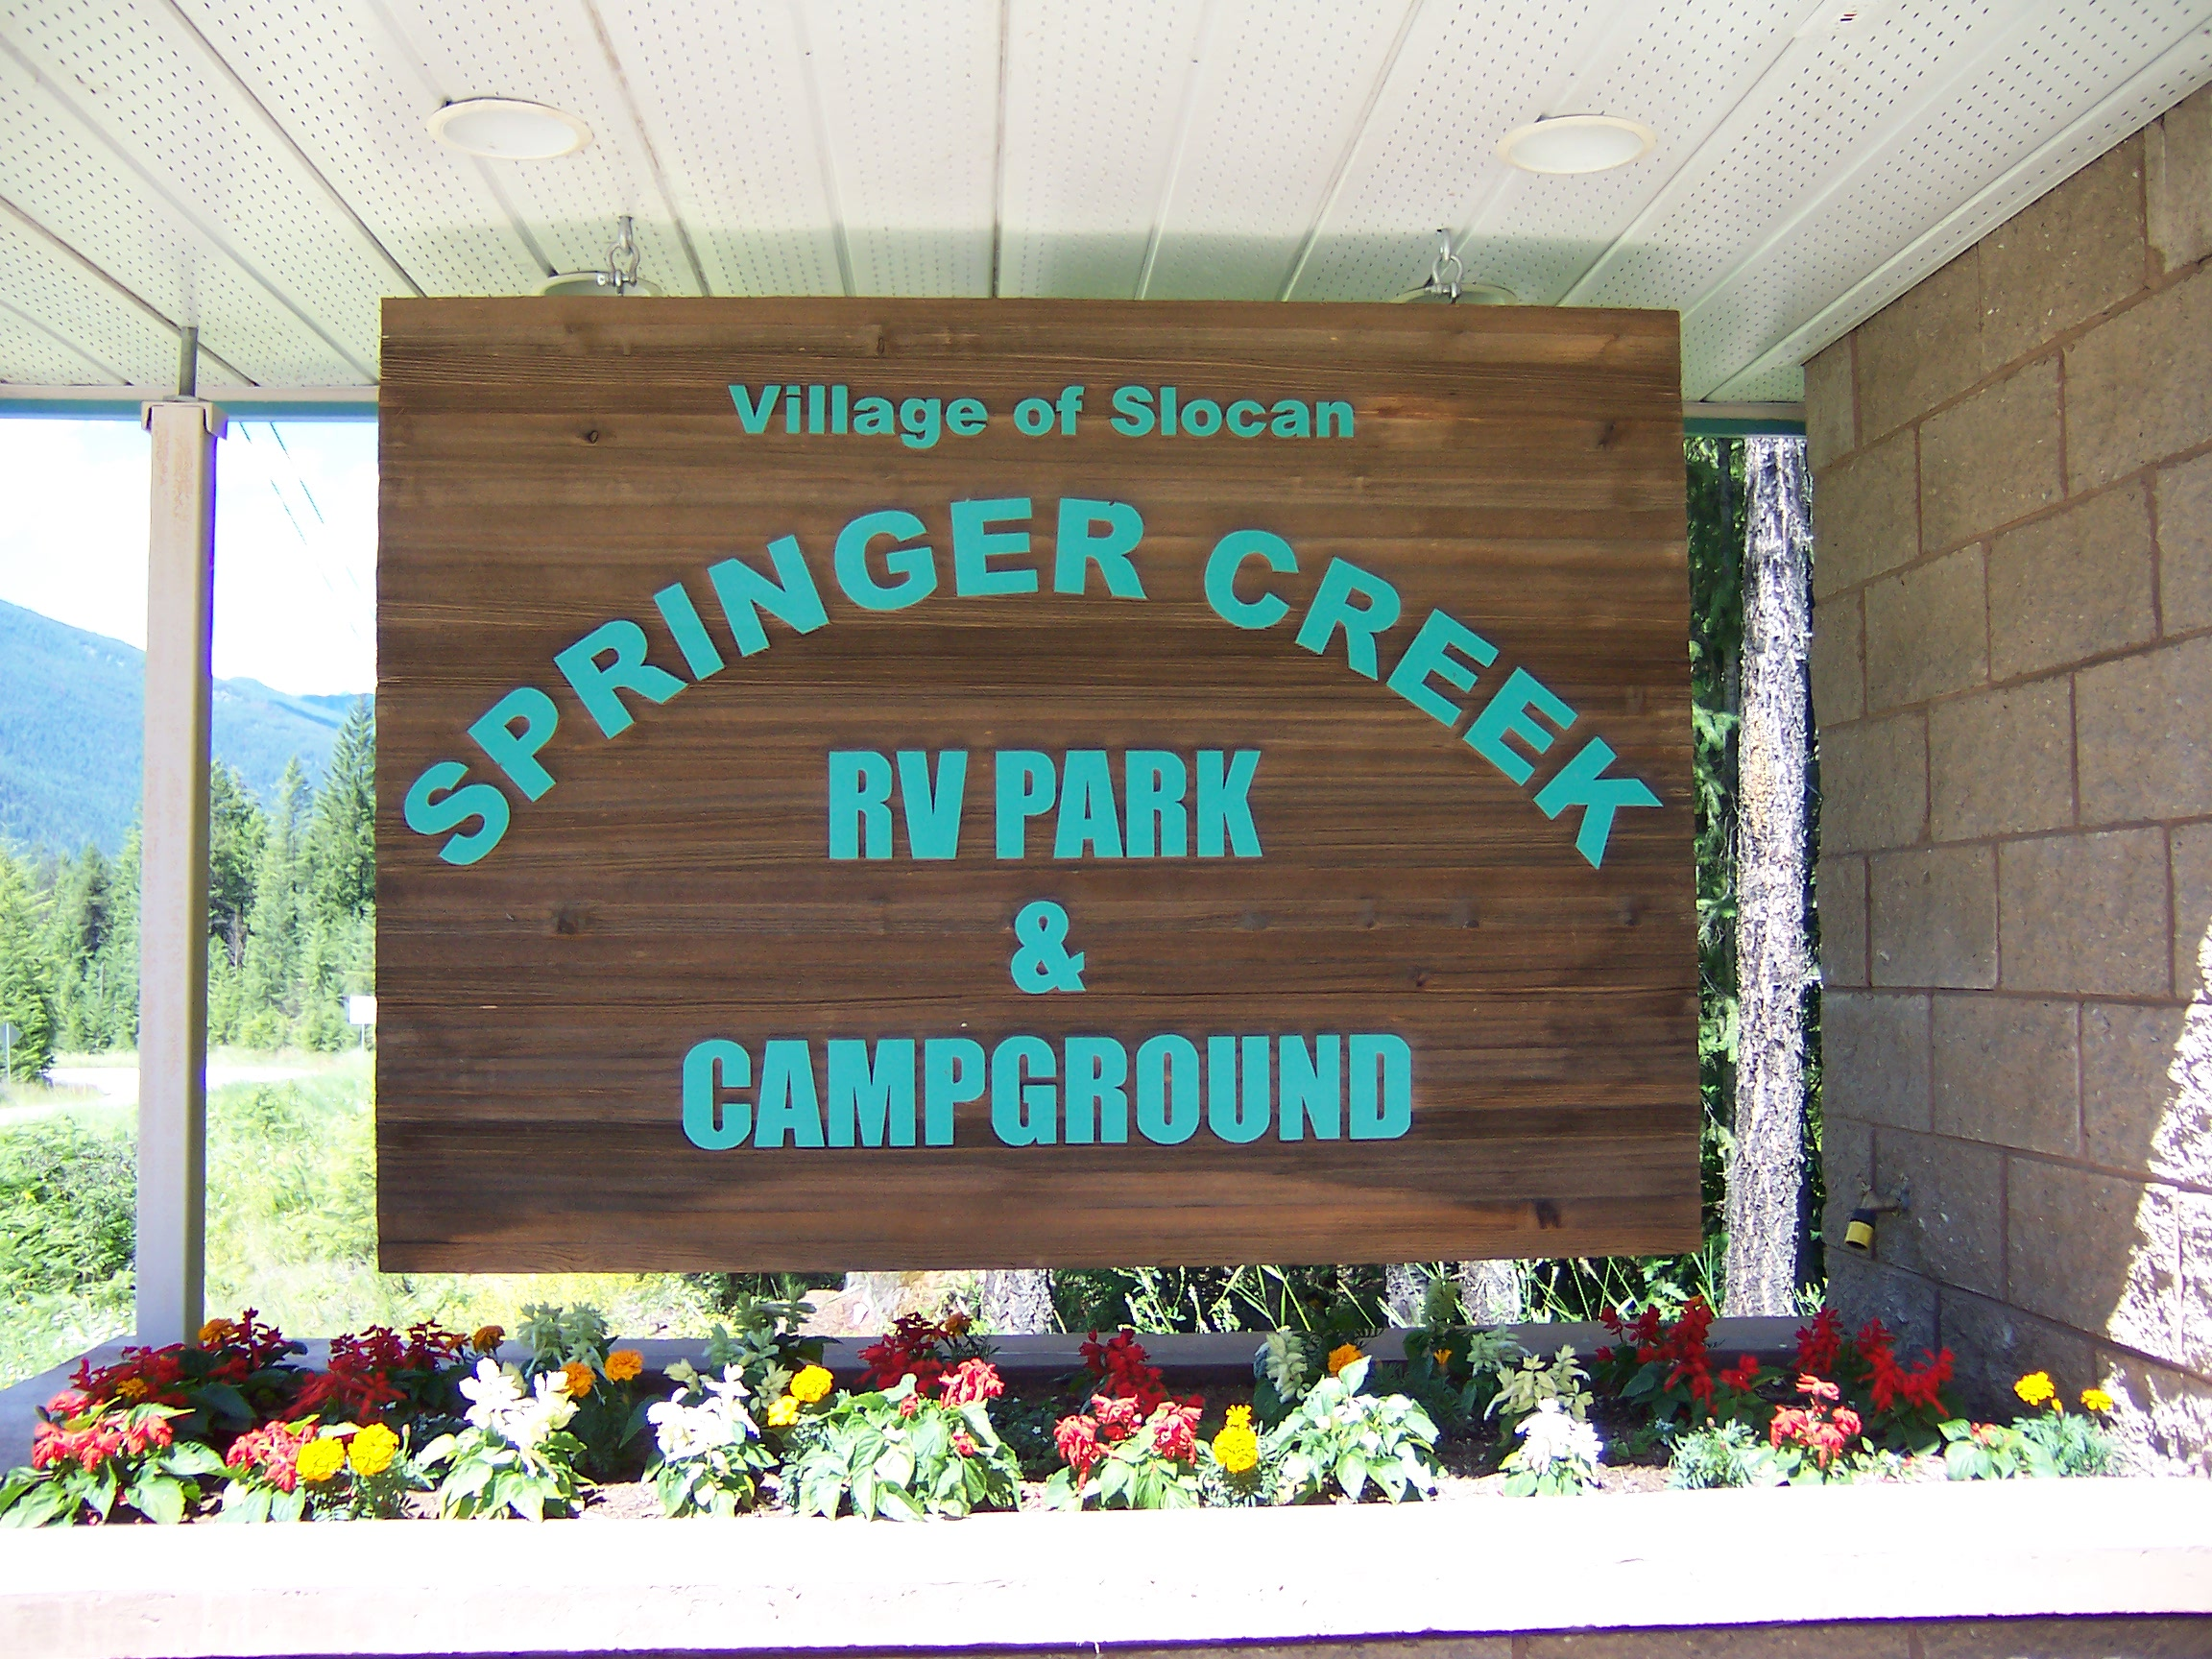 Springer Creek RV Park & Campground